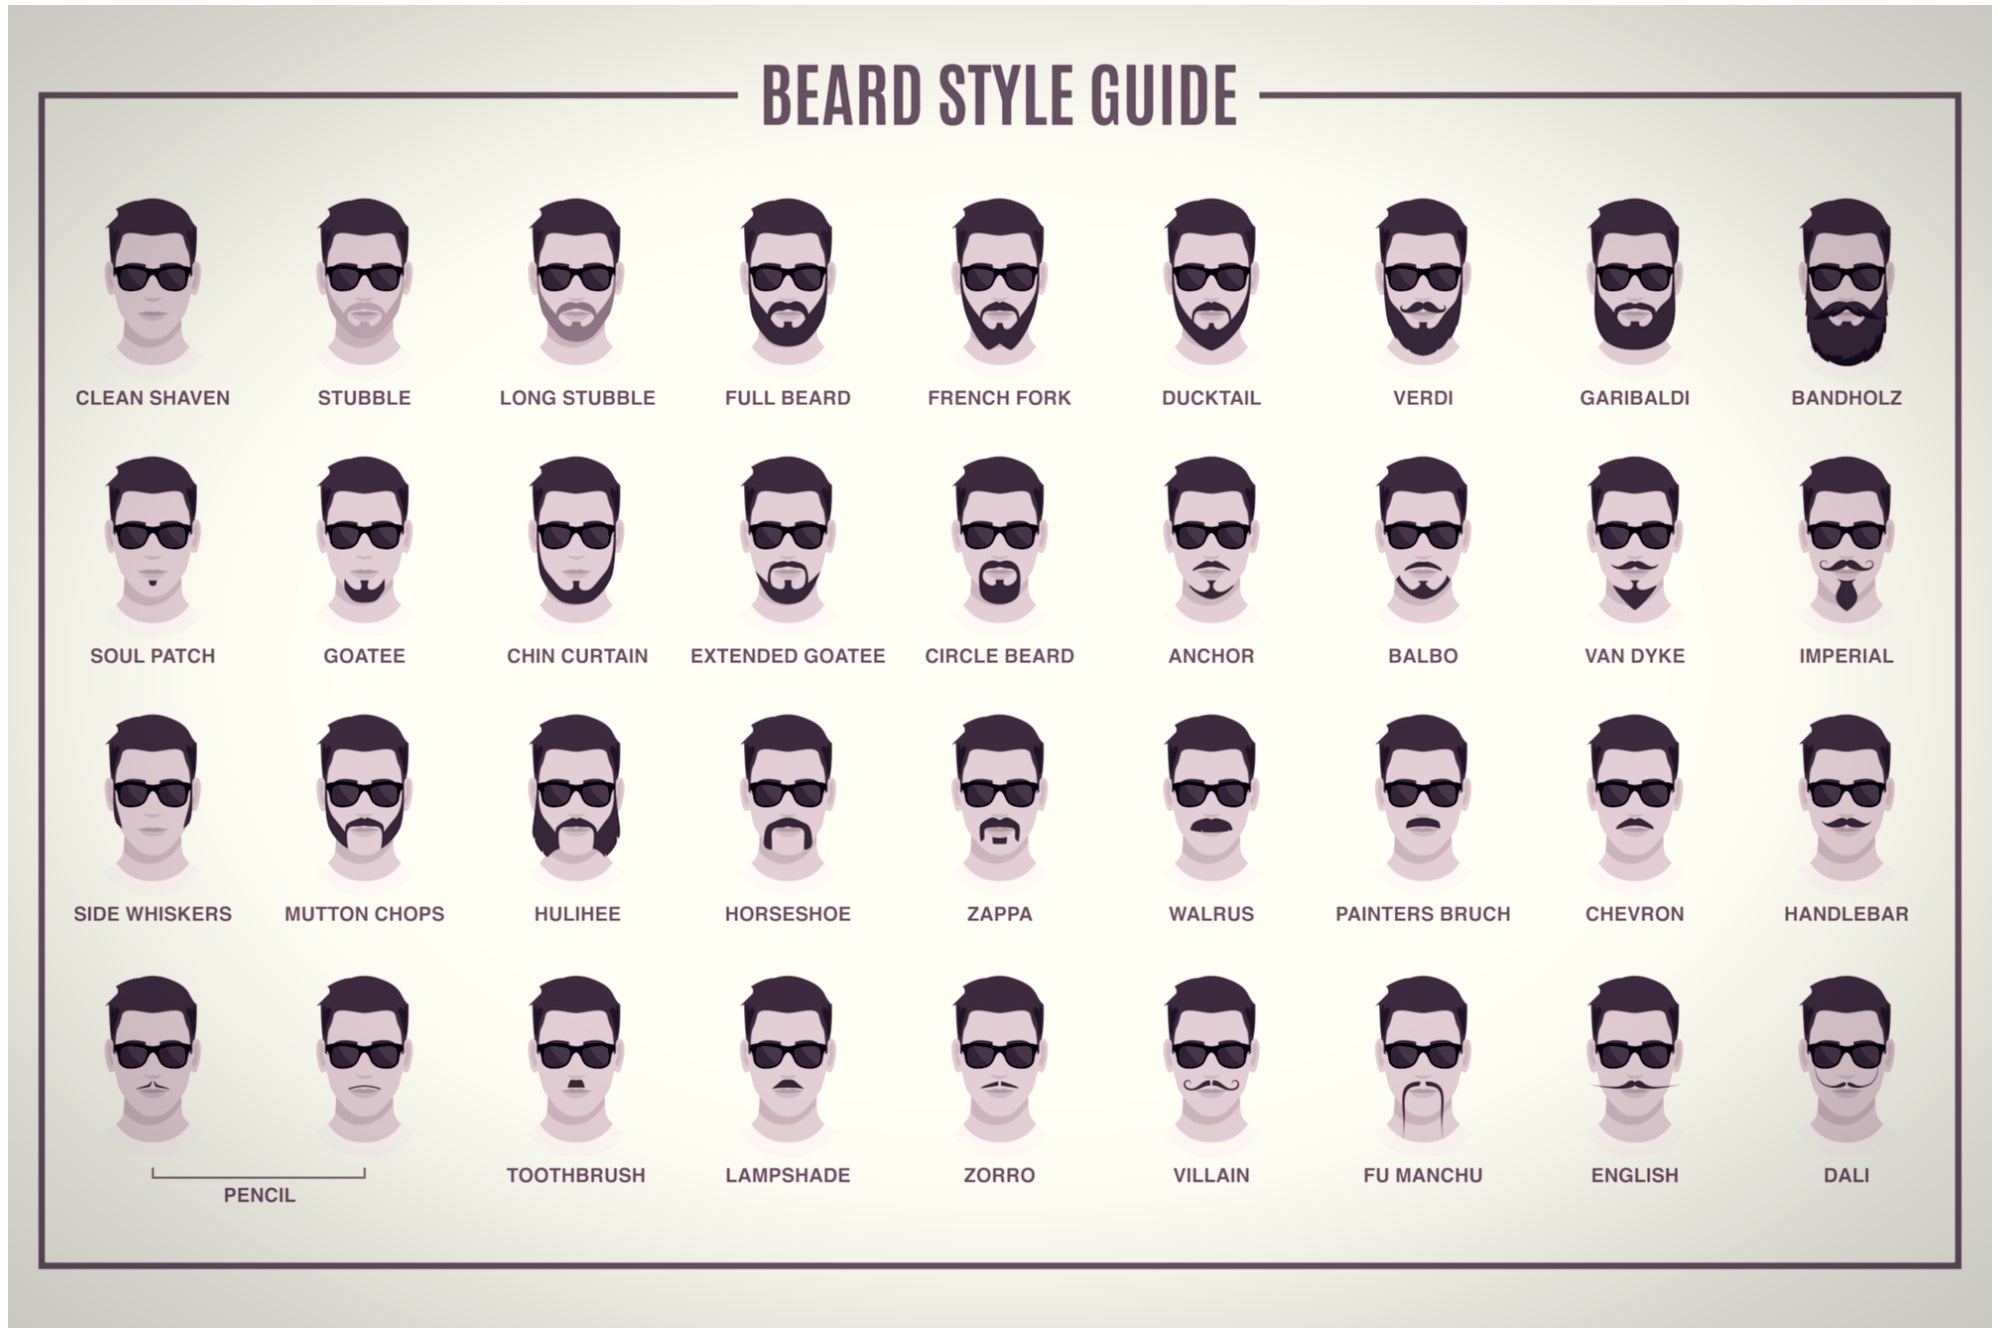 Different beard styles guide